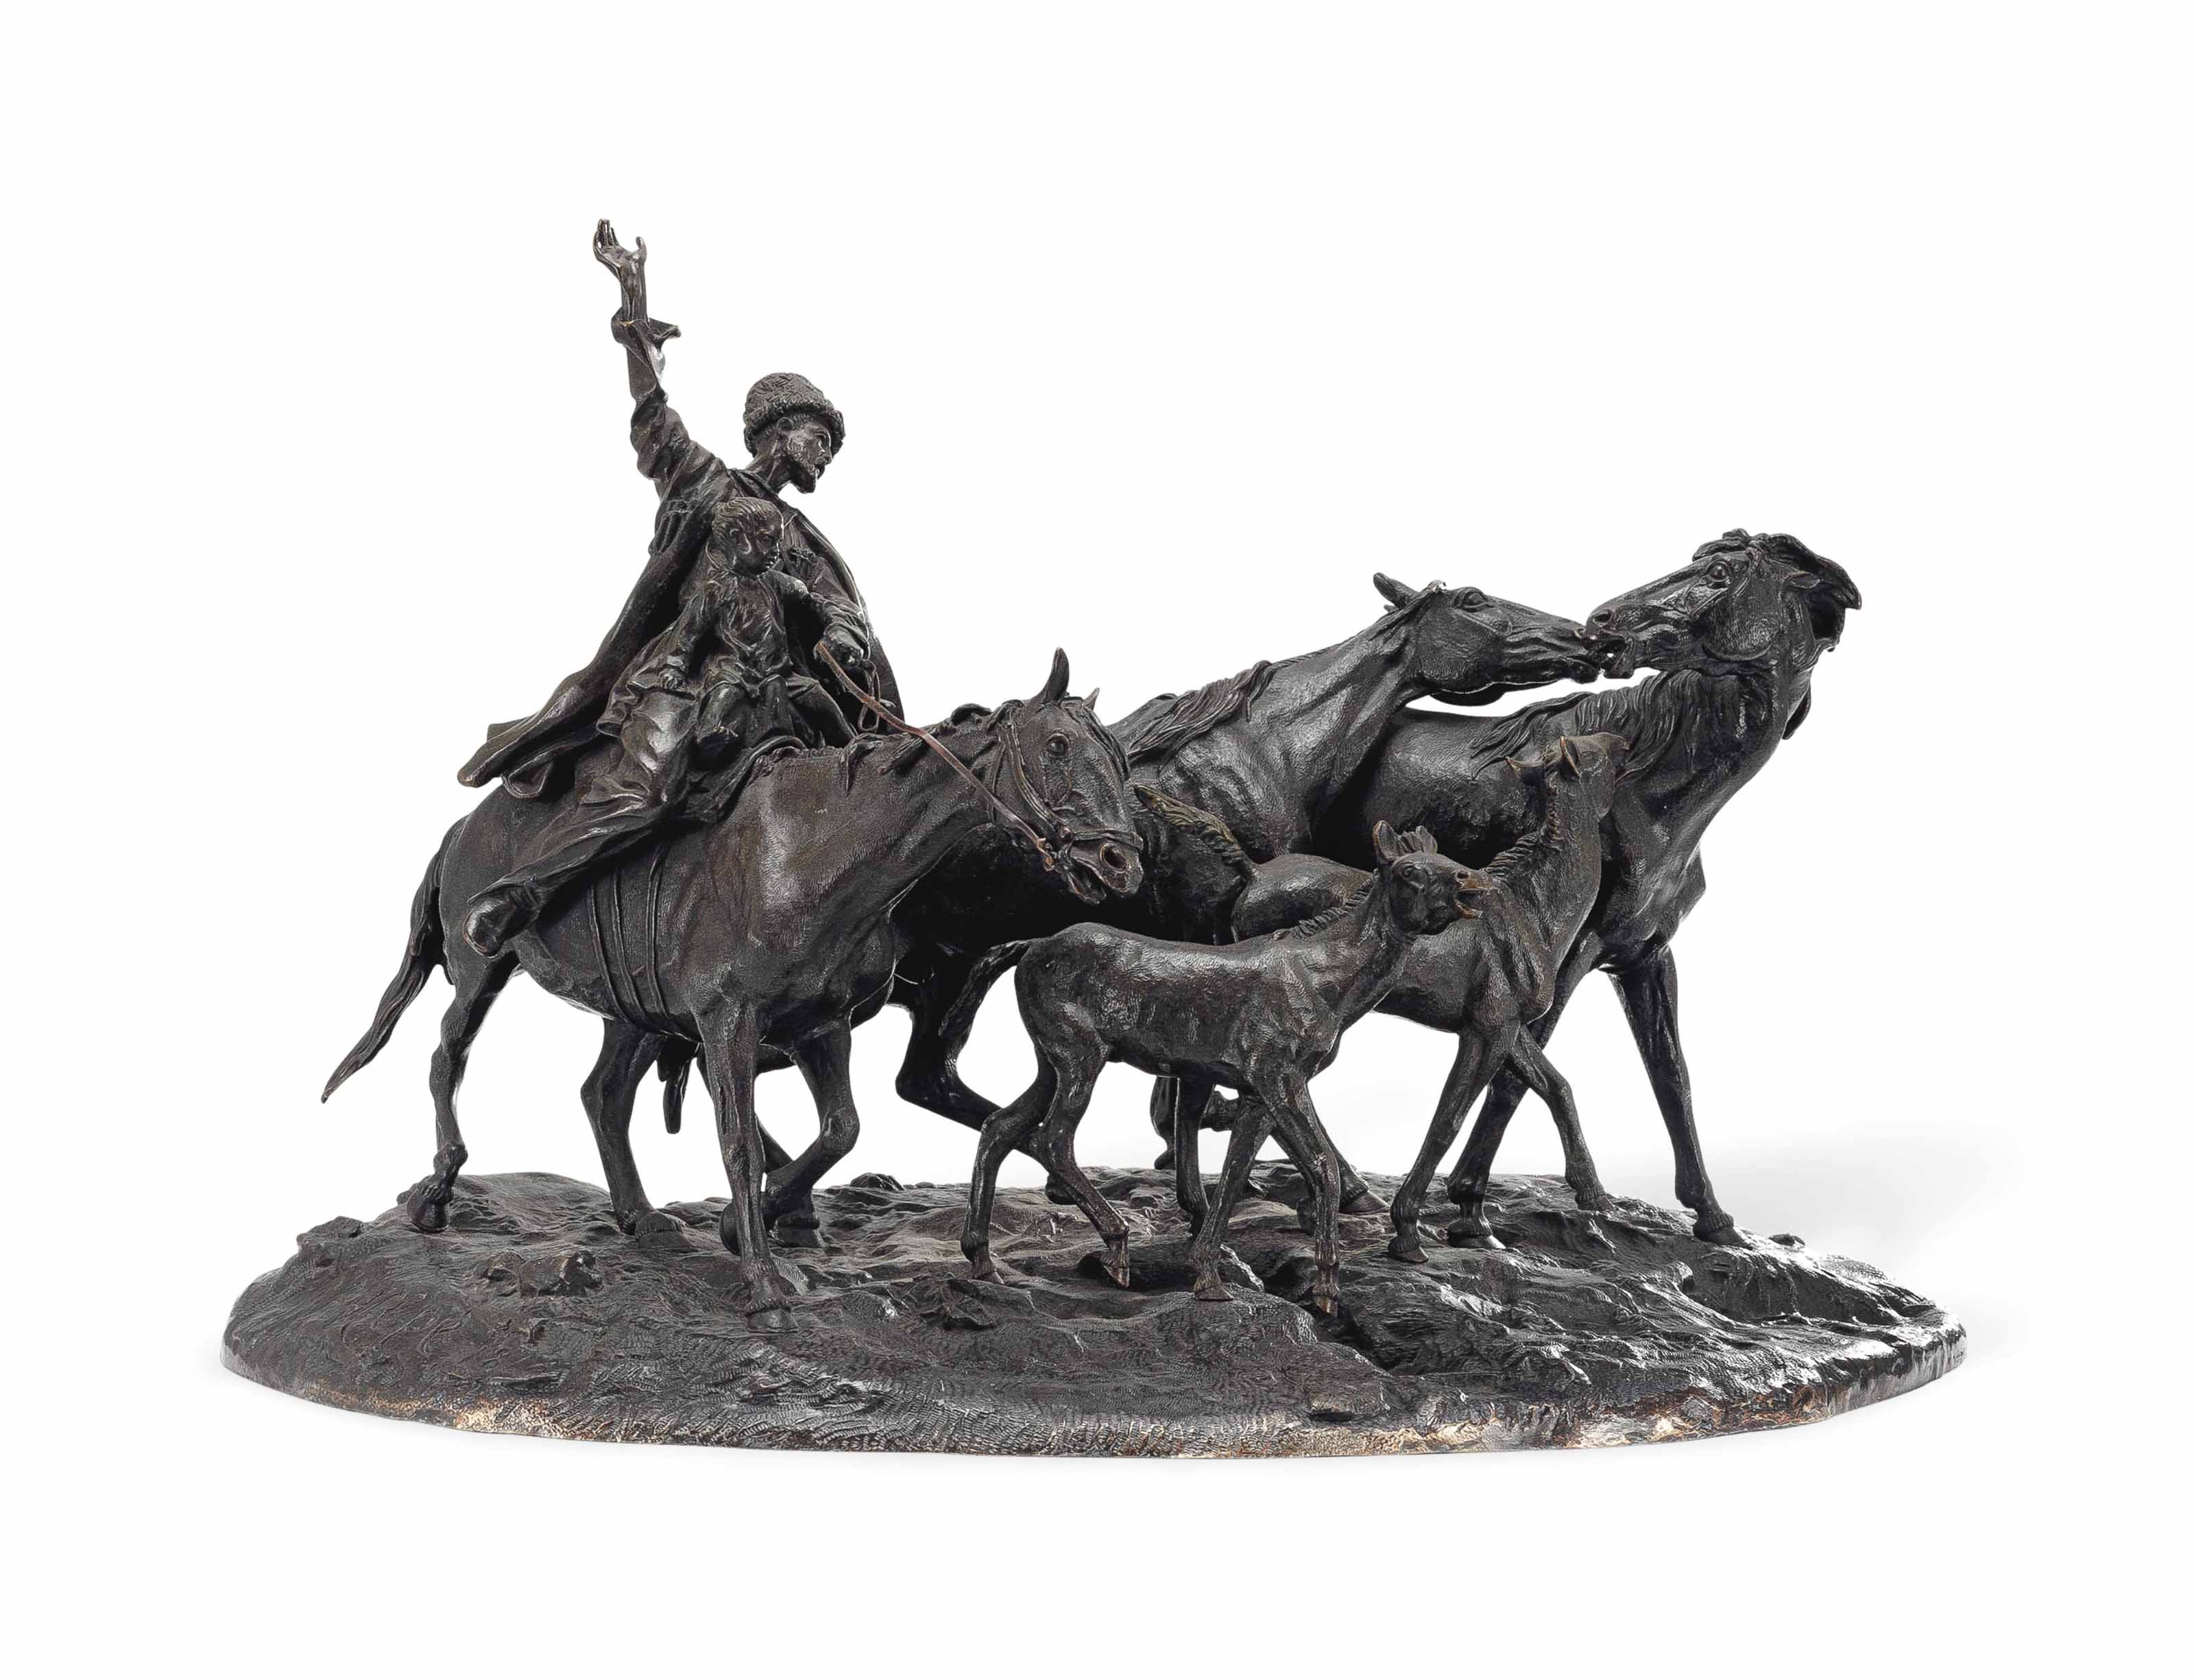 A BRONZE GROUP OF A HERD OF KIRGHIZ HORSES BEFORE DEPARTURE